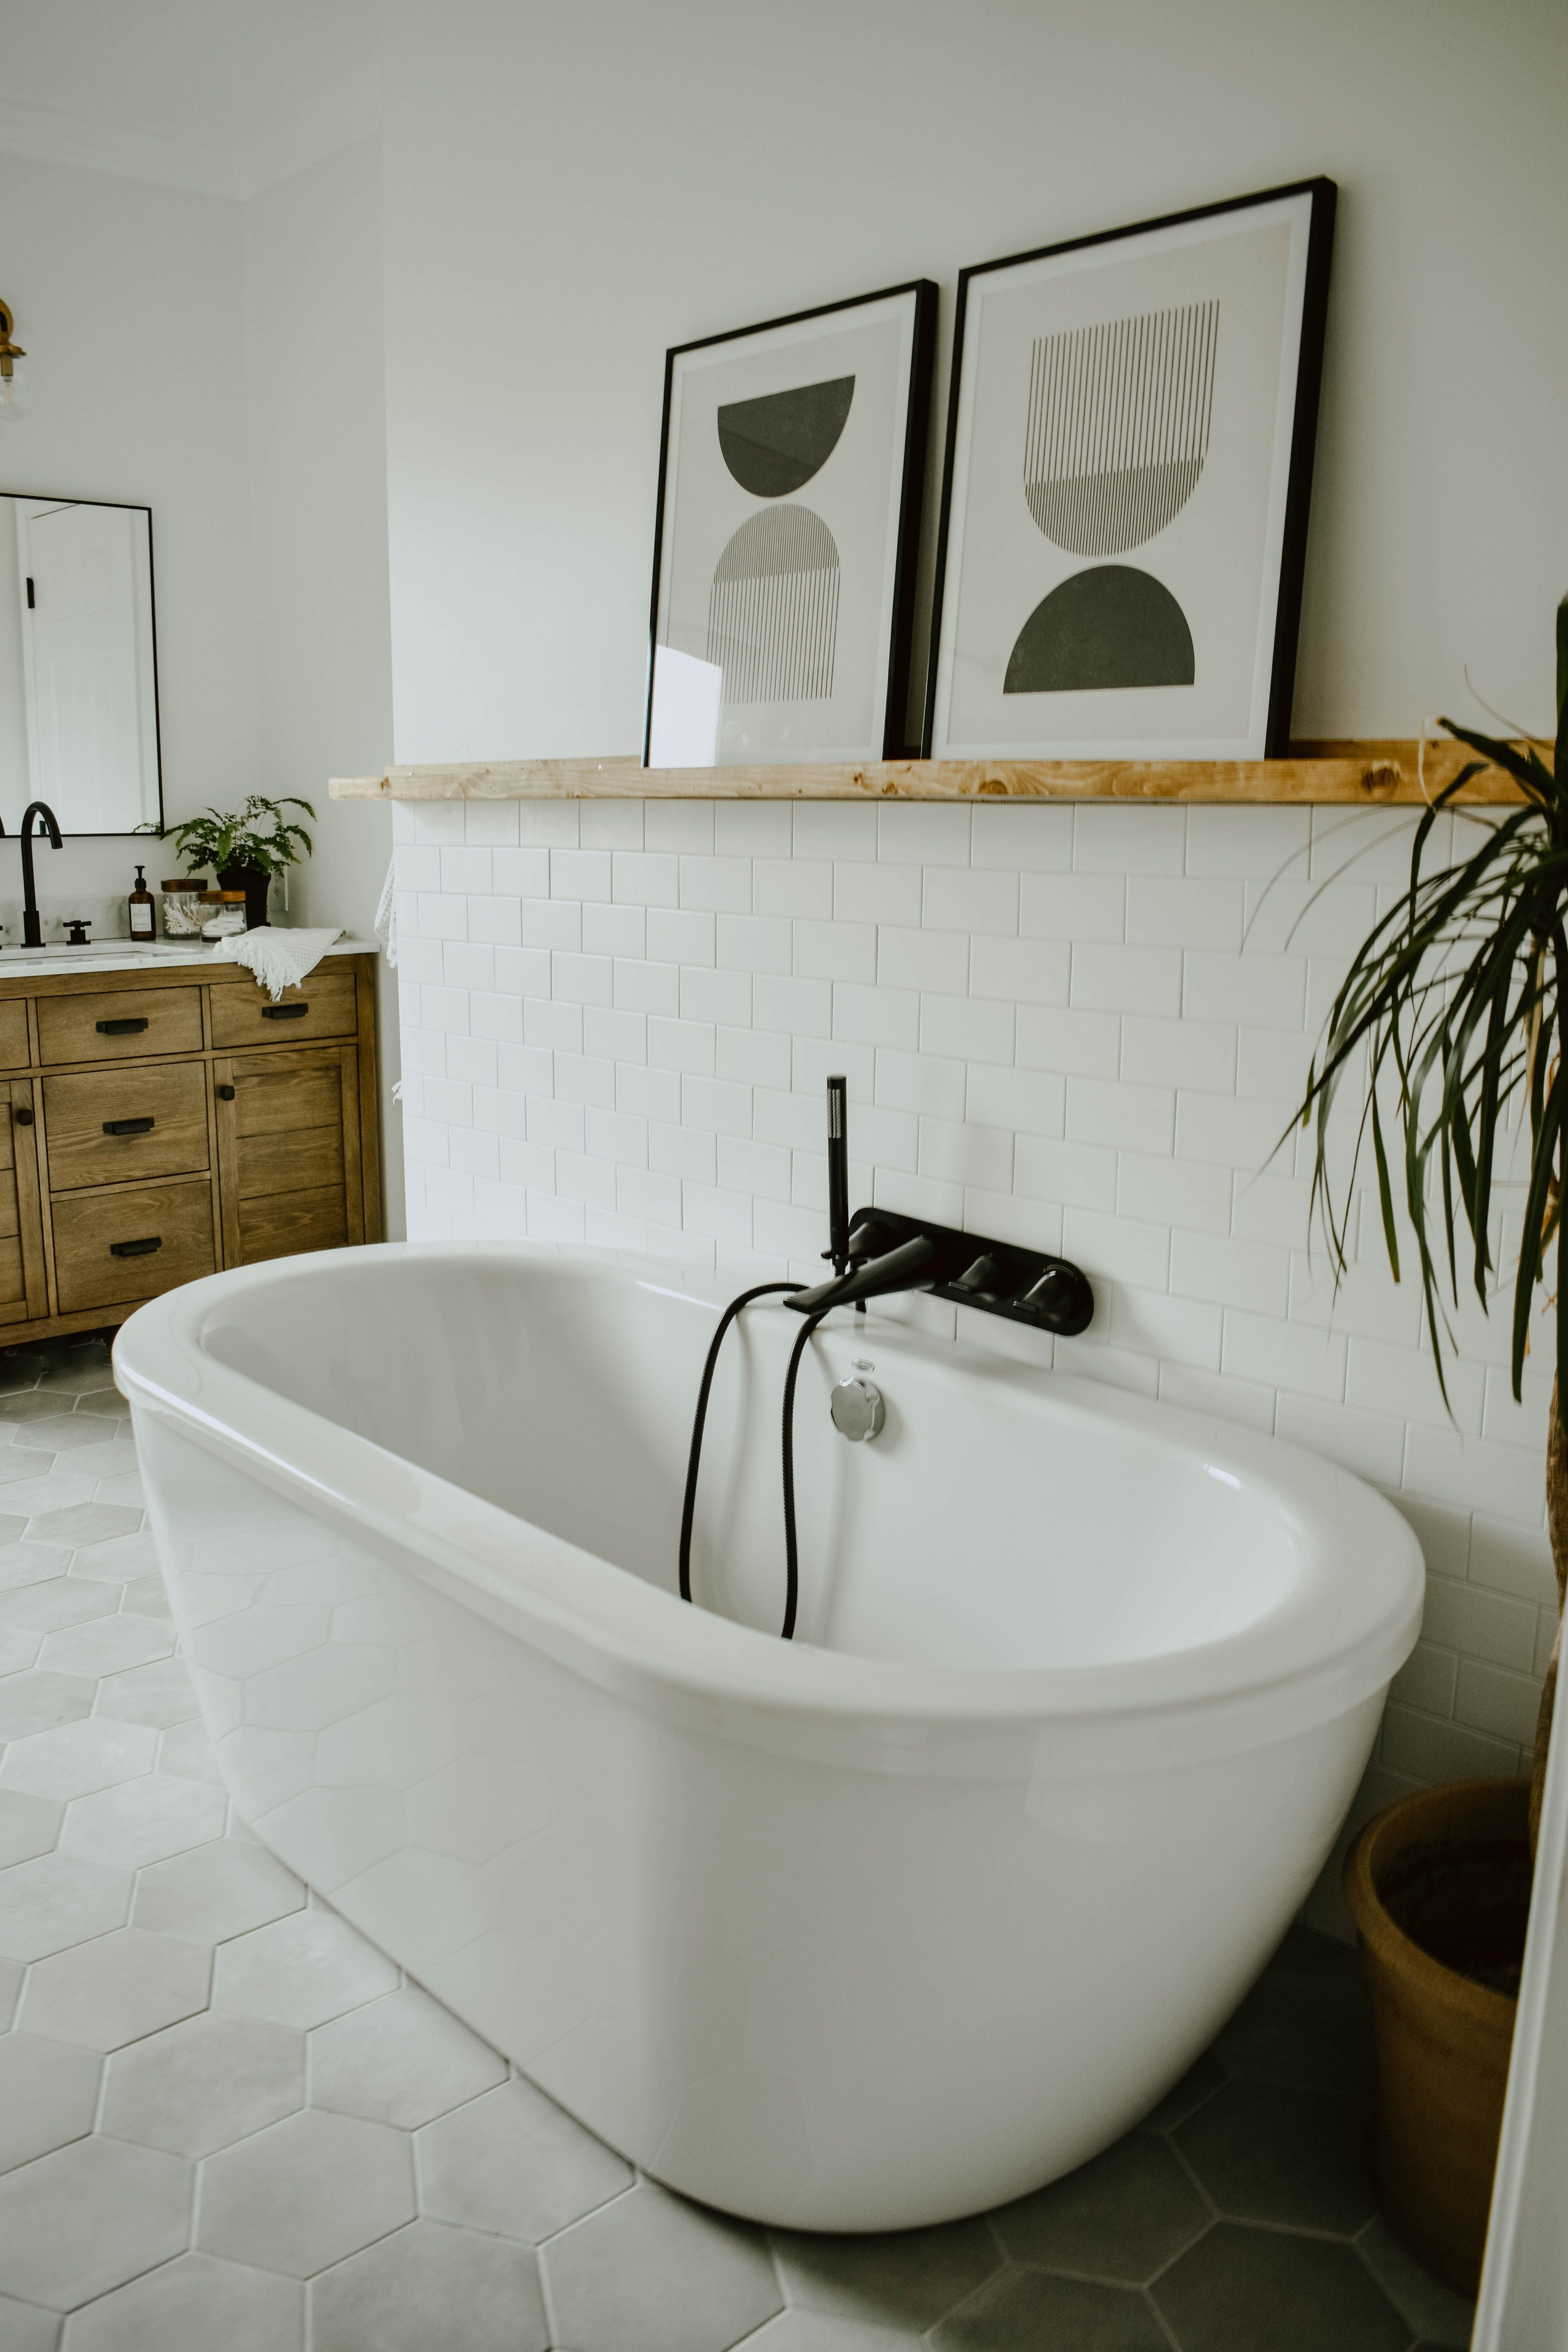 How To Choose The Best Bath Tub For Your Space With Images